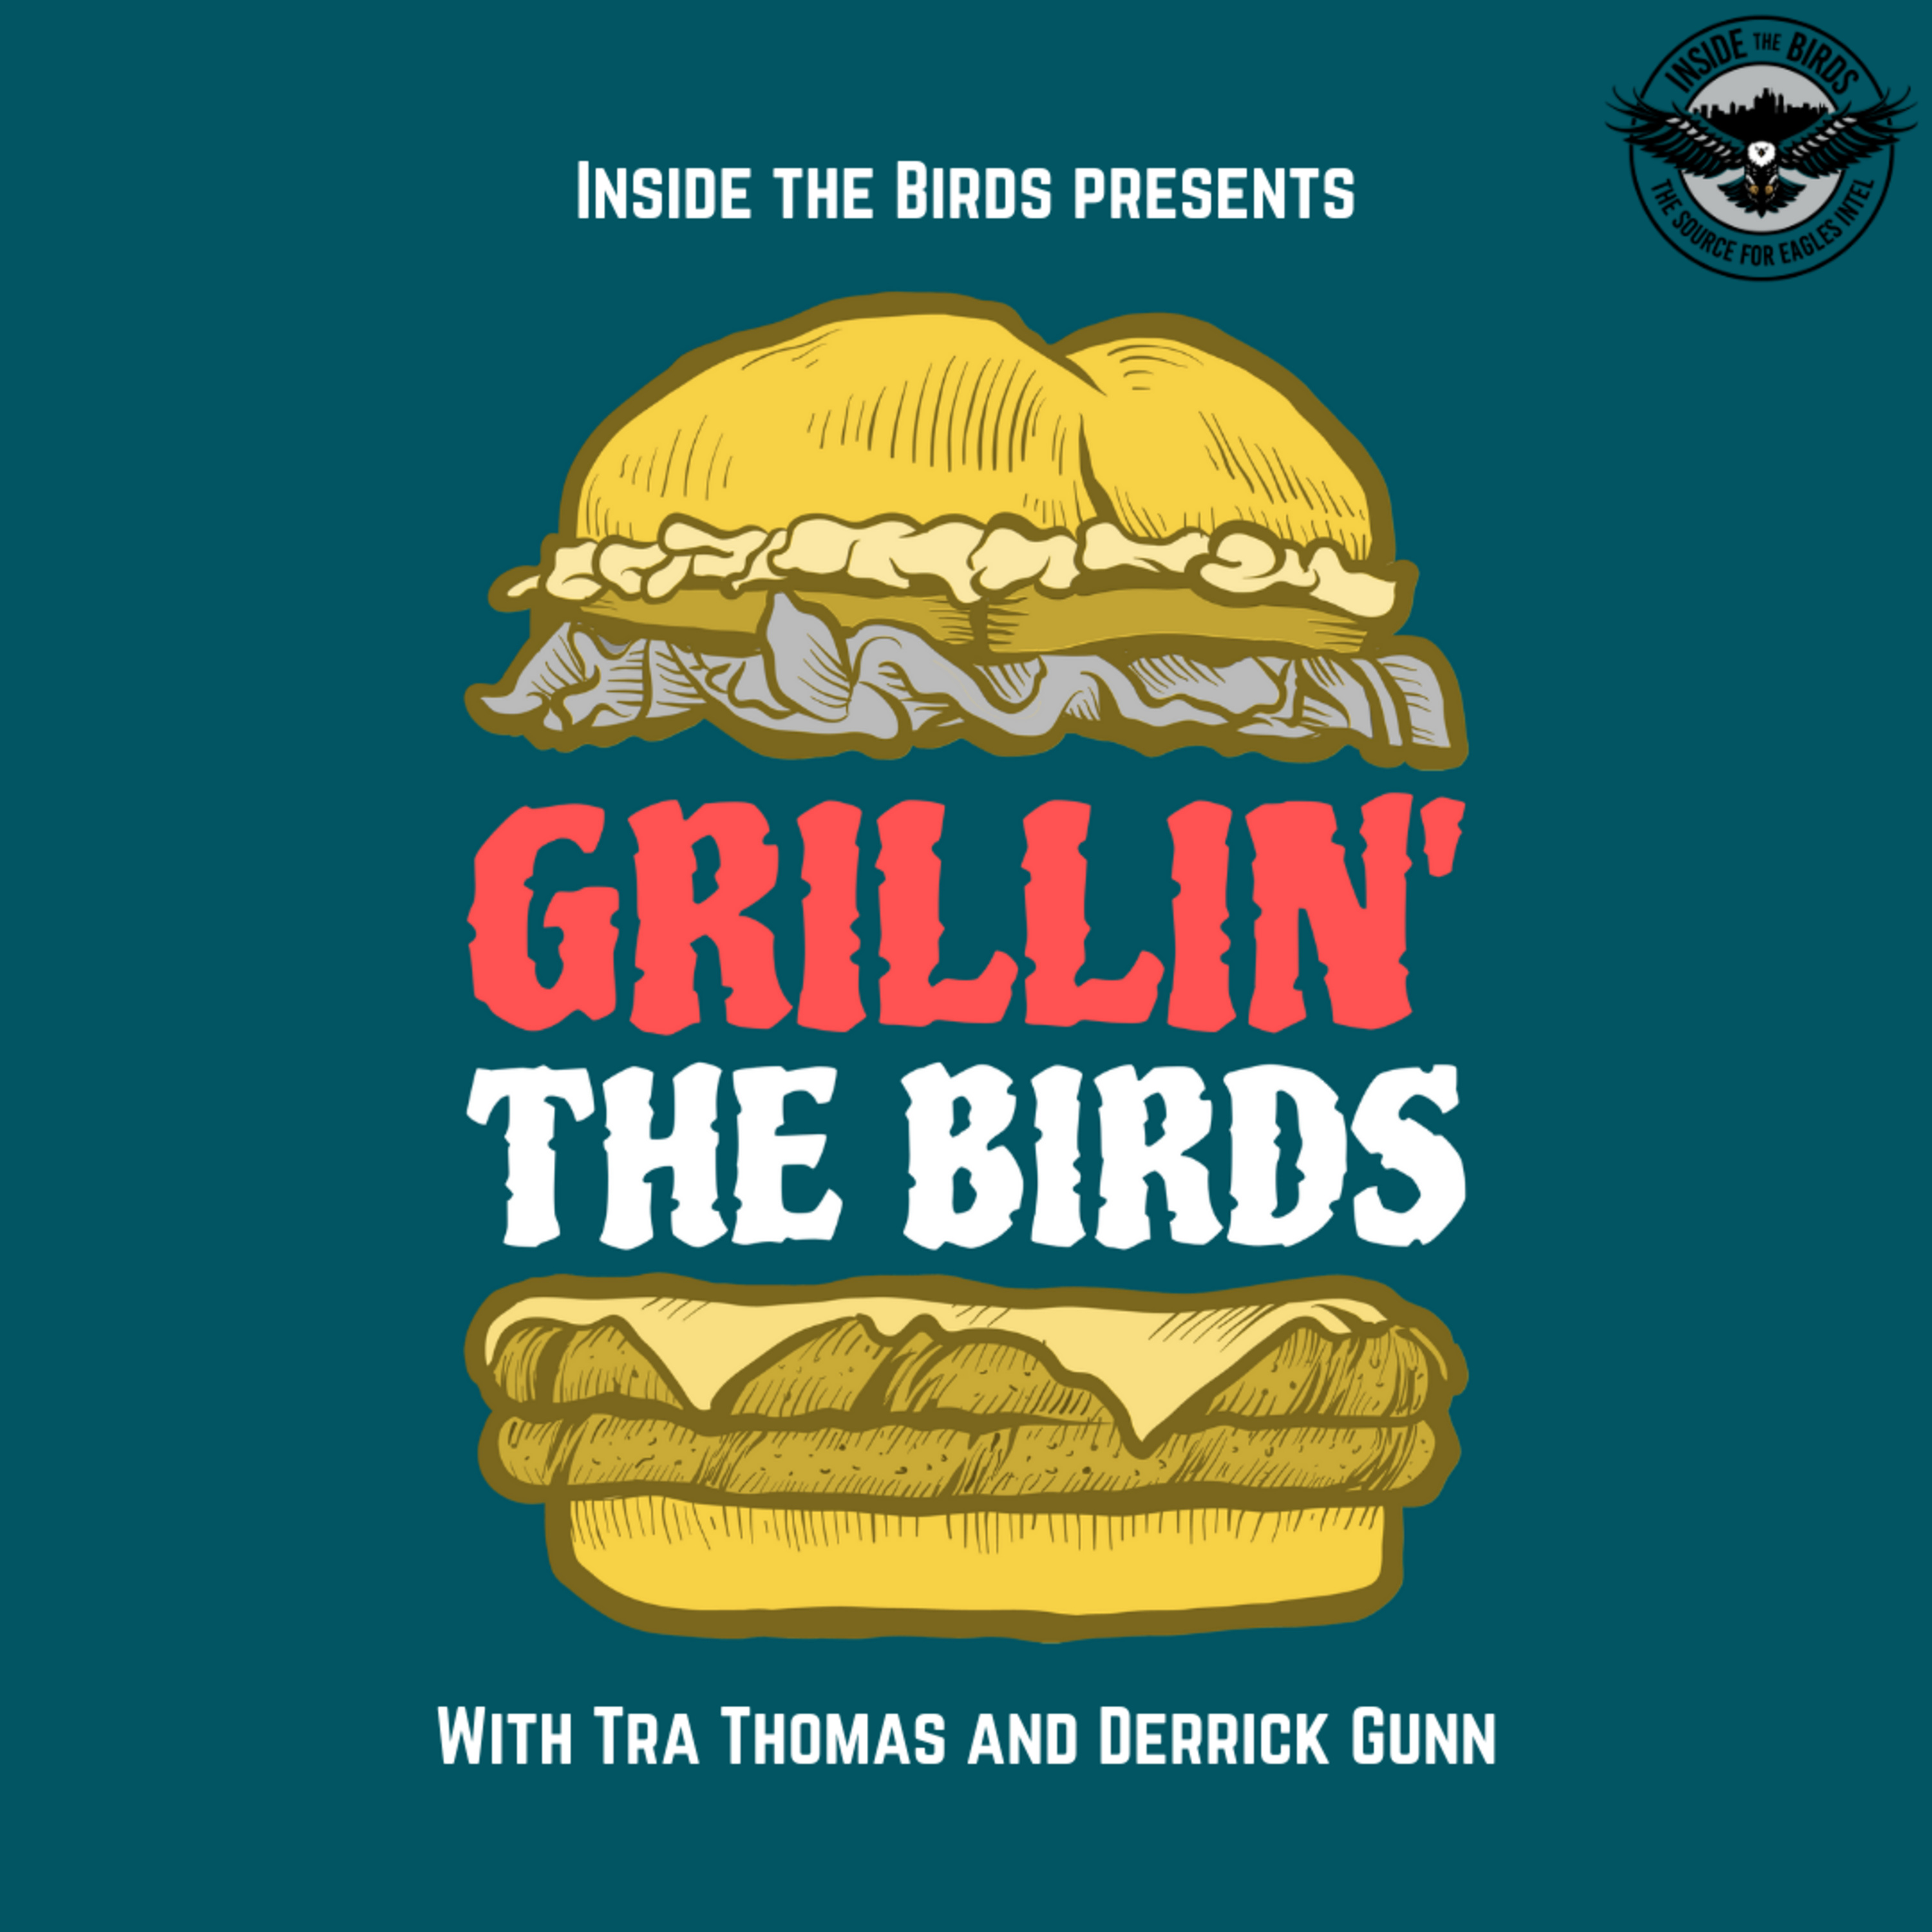 Tipping play calls | Fresh meat | No-hat game? | Grillin' The Birds